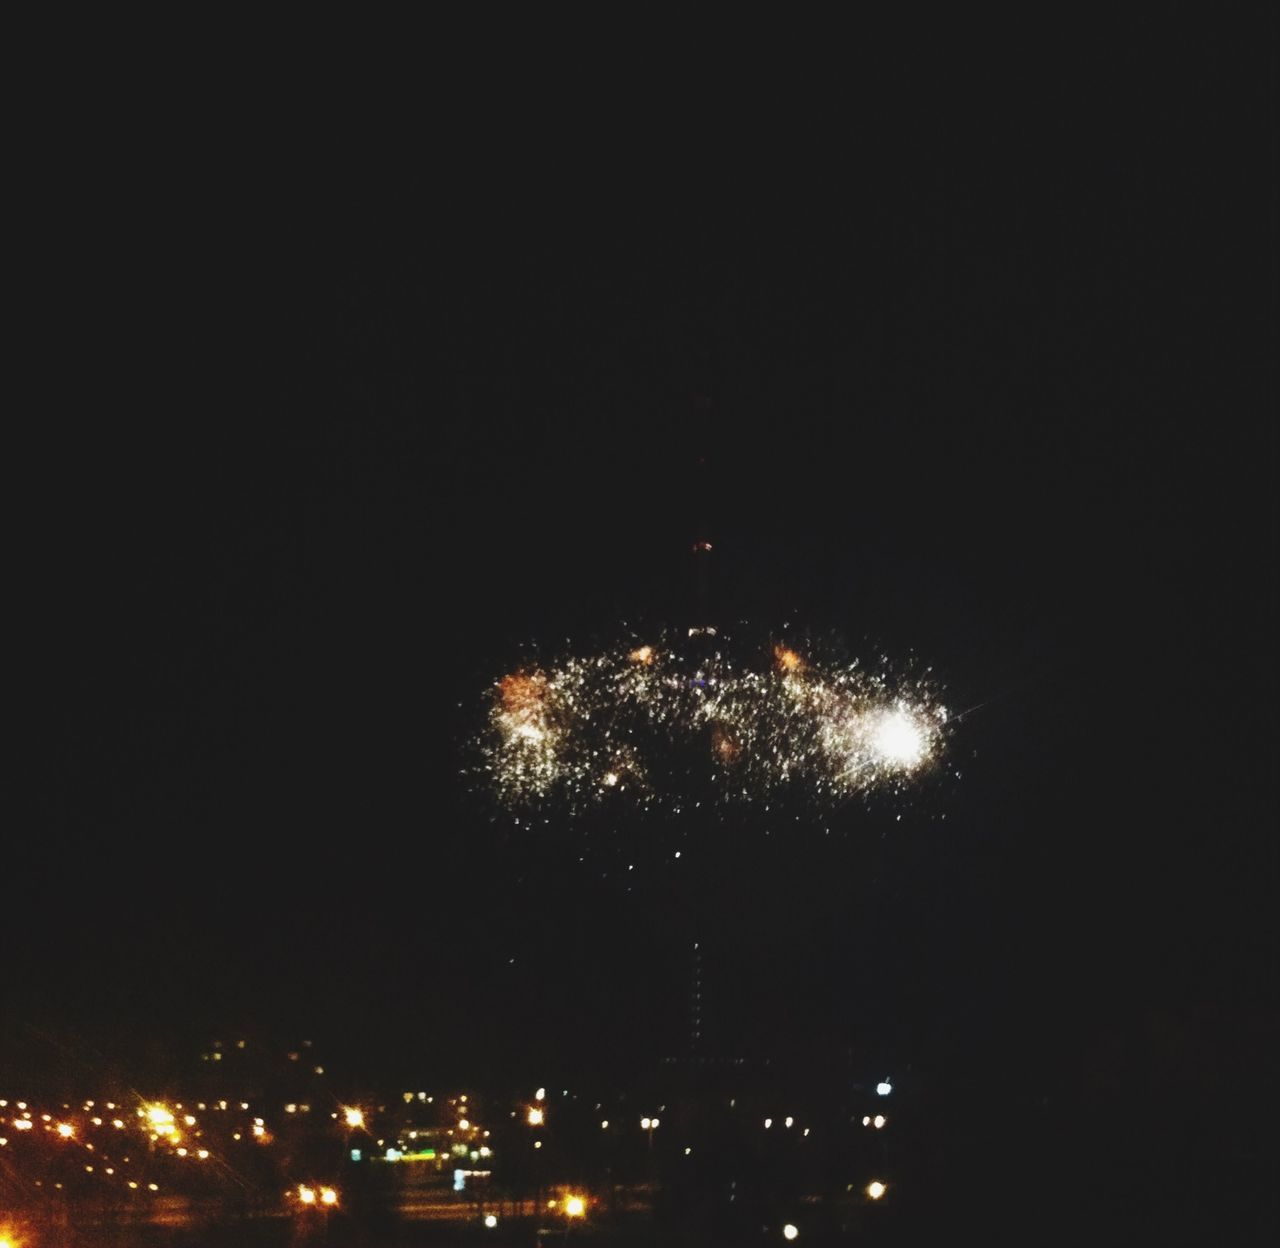 Defocused Image Of Firework Display Over City At Night